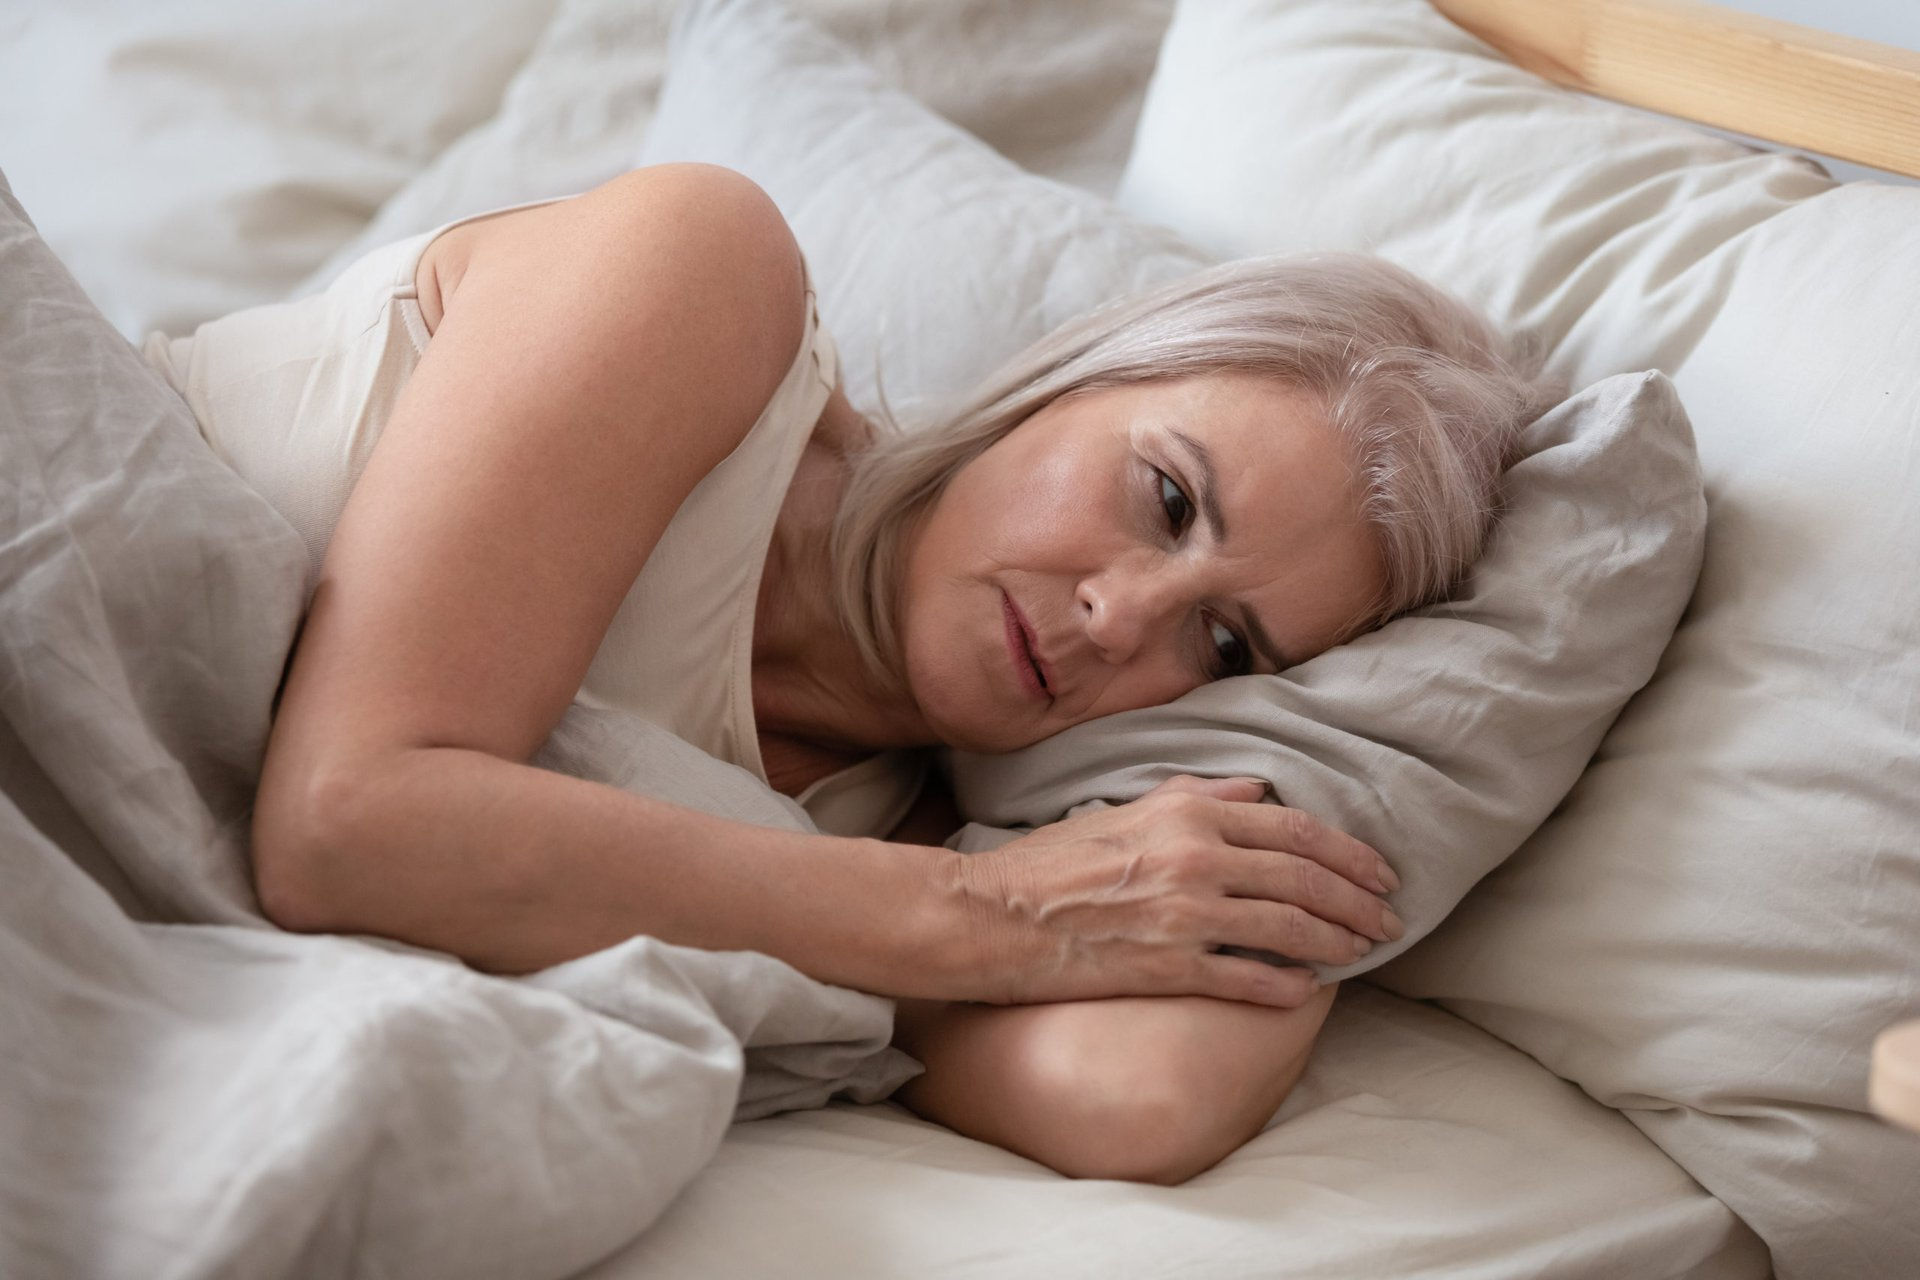 Woman with thyroid disease has trouble sleeping